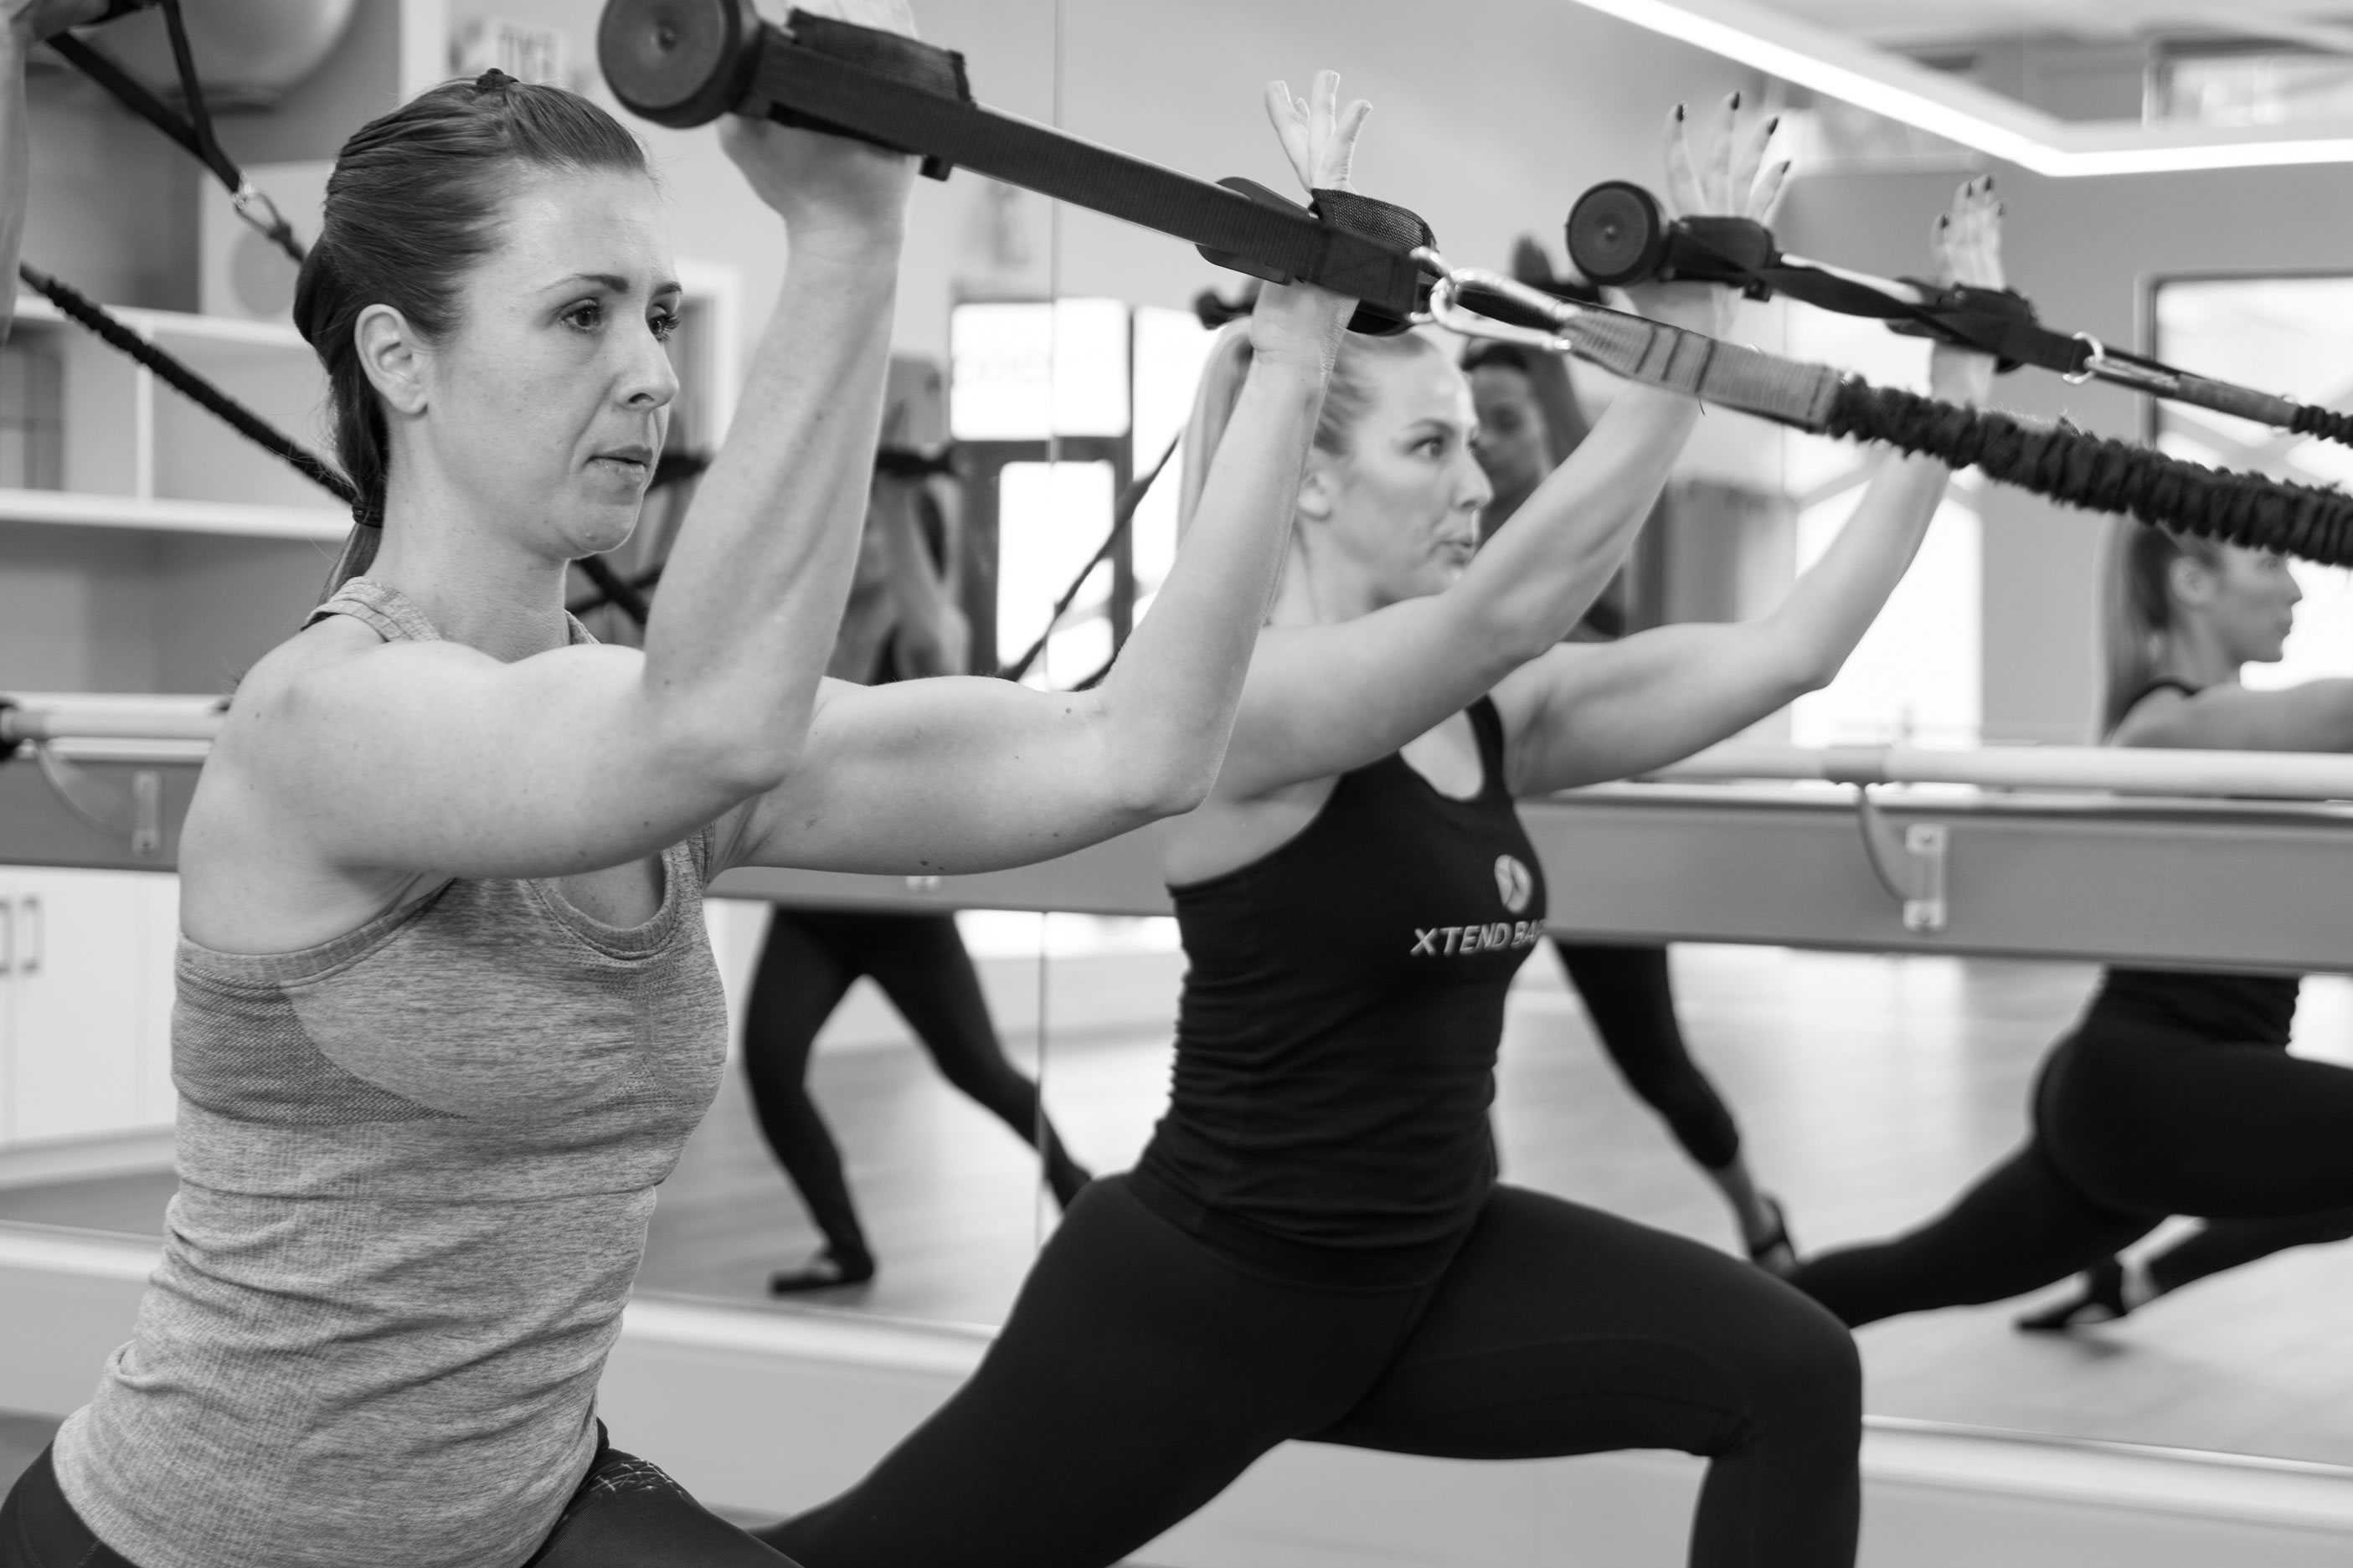 We put the Bar in Xtend Barre